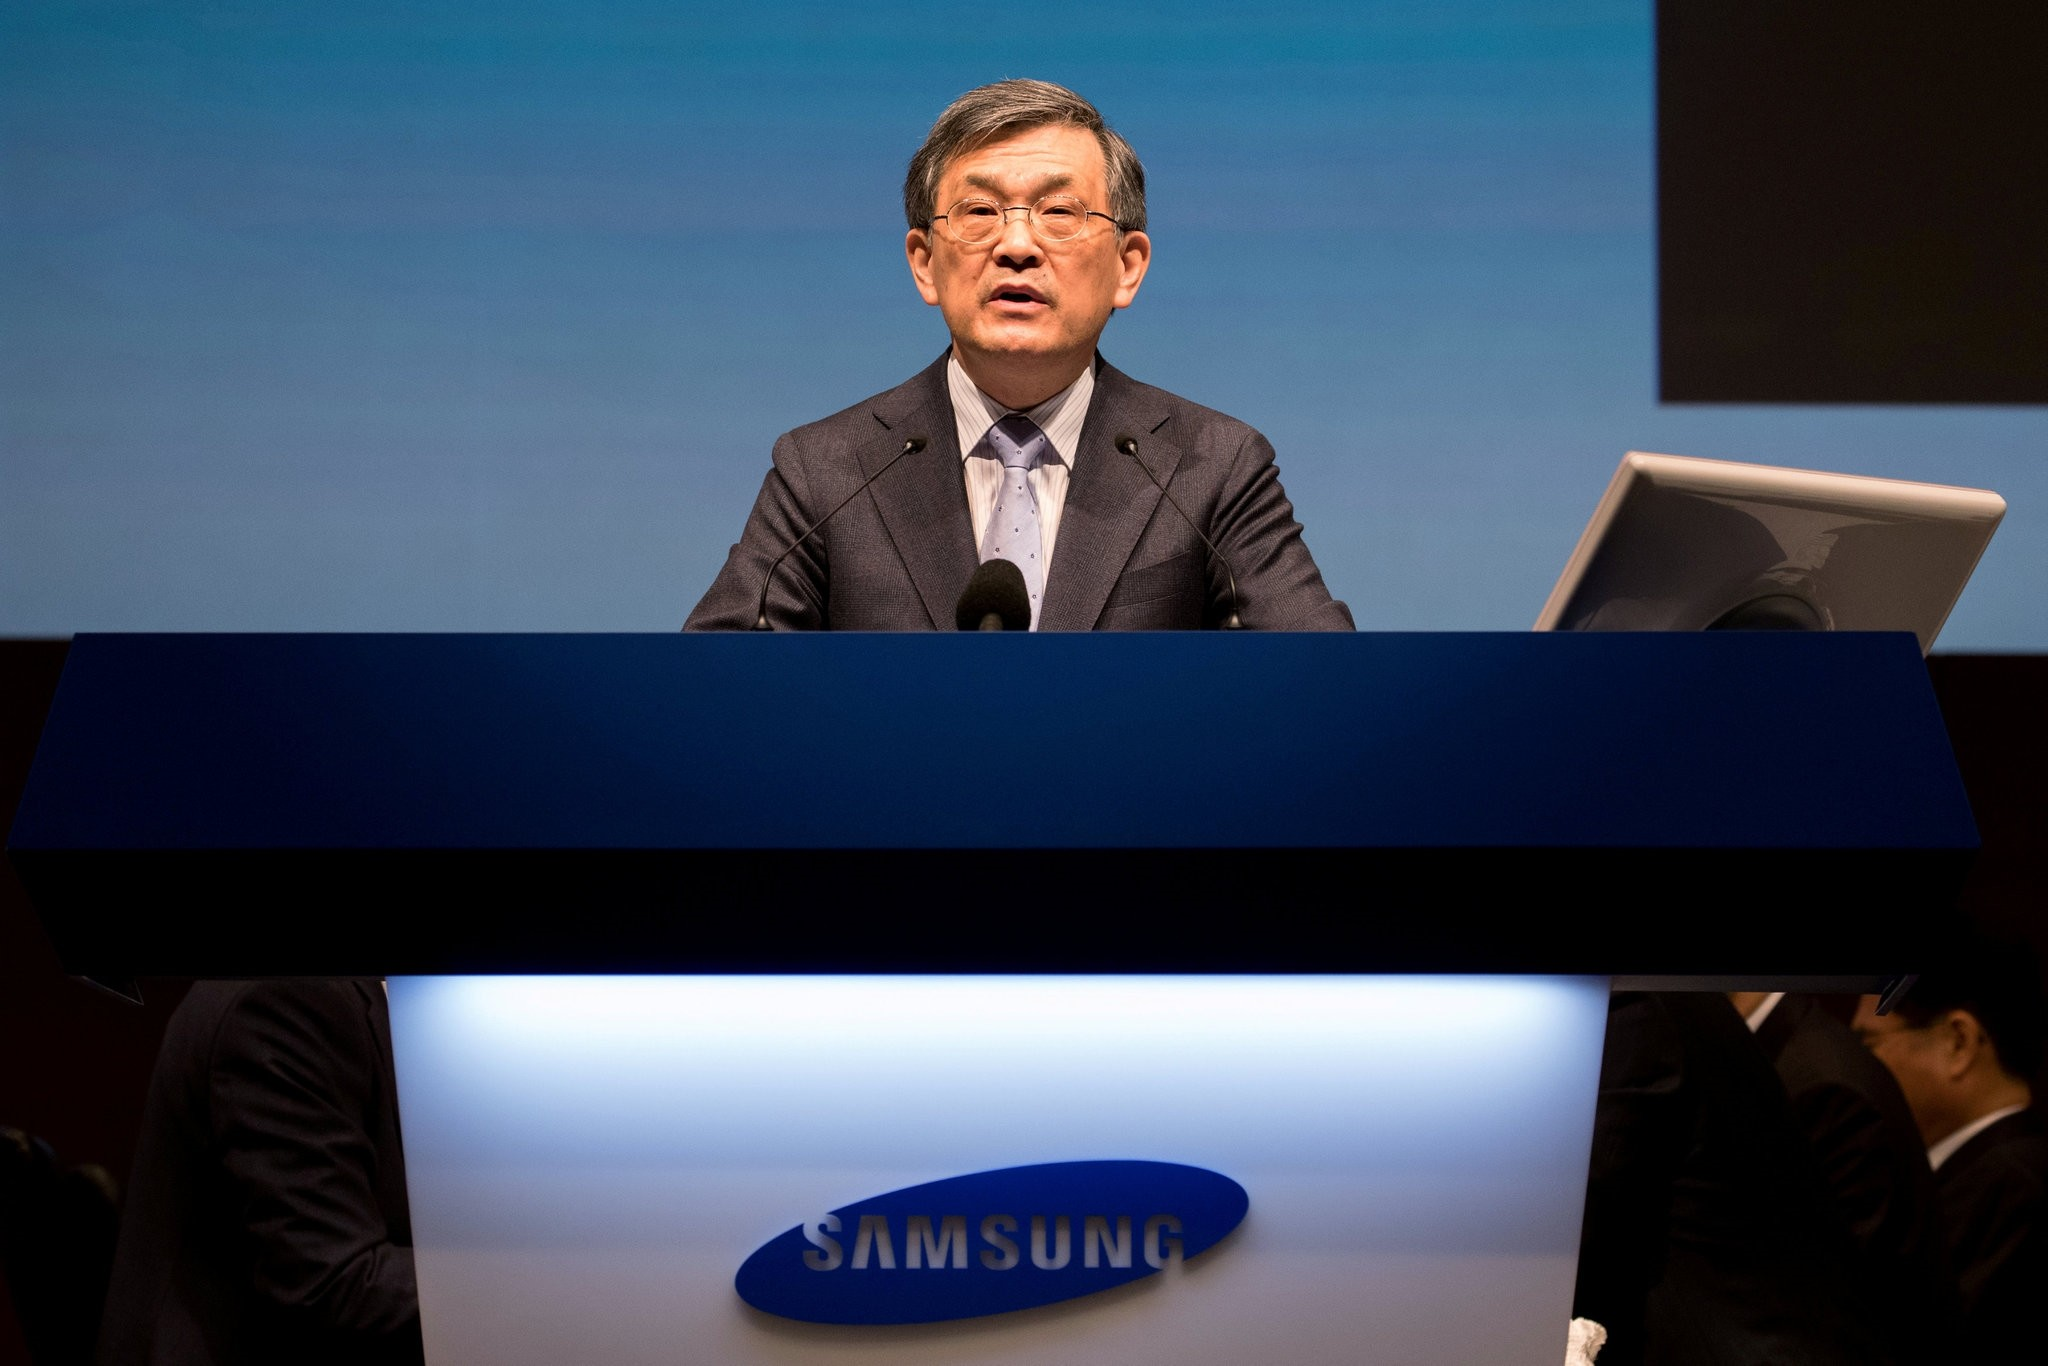 Kwon Oh-Hyun, co-chief executive officer of Samsung Electronics Co., speaks during the company's annual general meeting at the Seocho office building in Seoul, March 24, 2017. (REUTERS Photo)